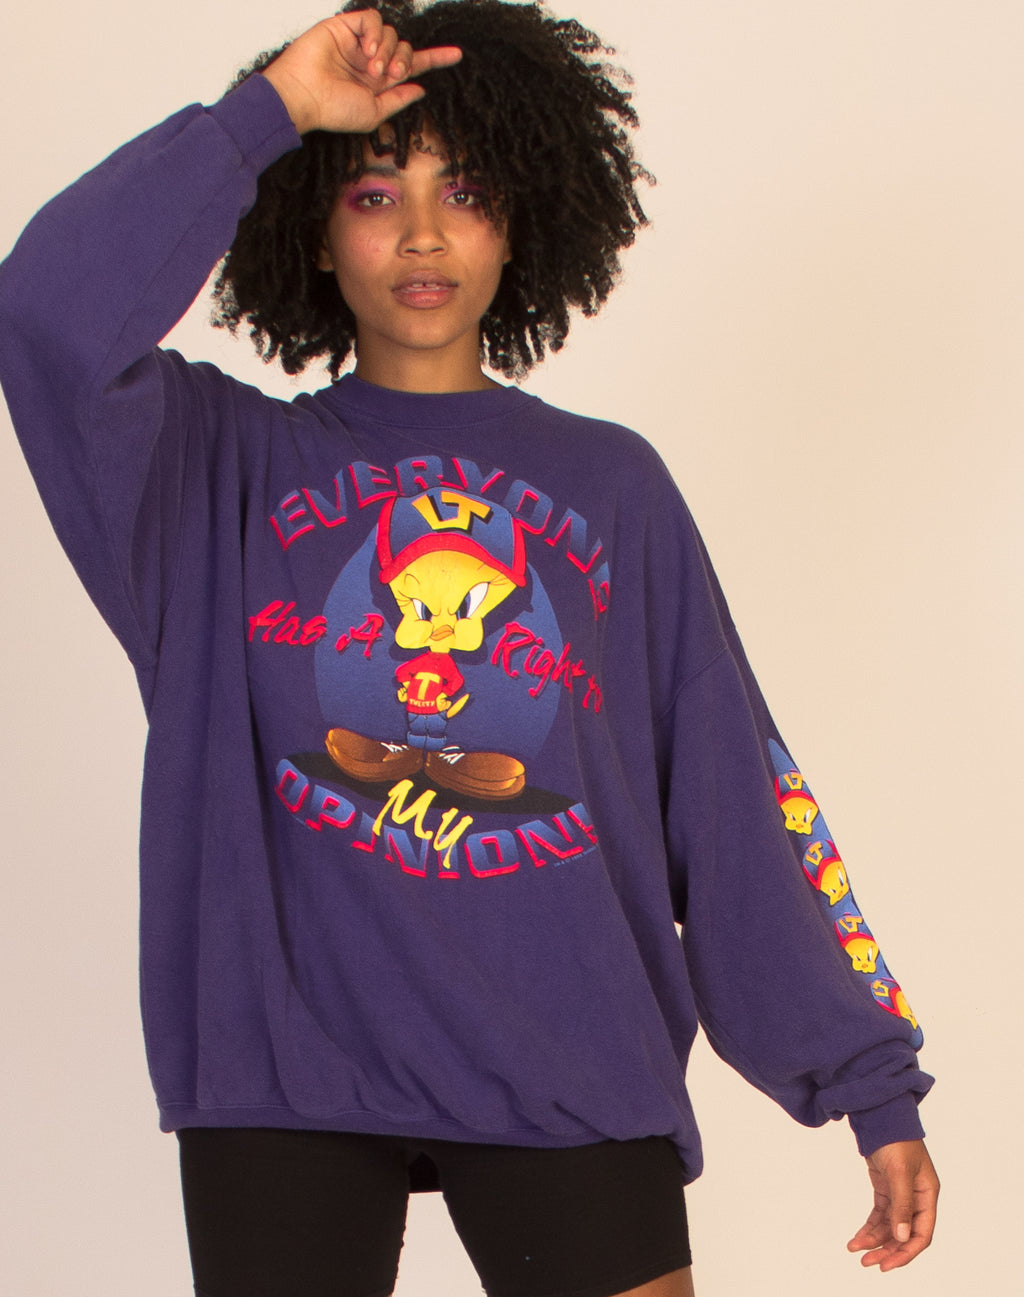 TWEETY BIRD 90'S GRAPHIC OVERSIZED SWEATSHIRT